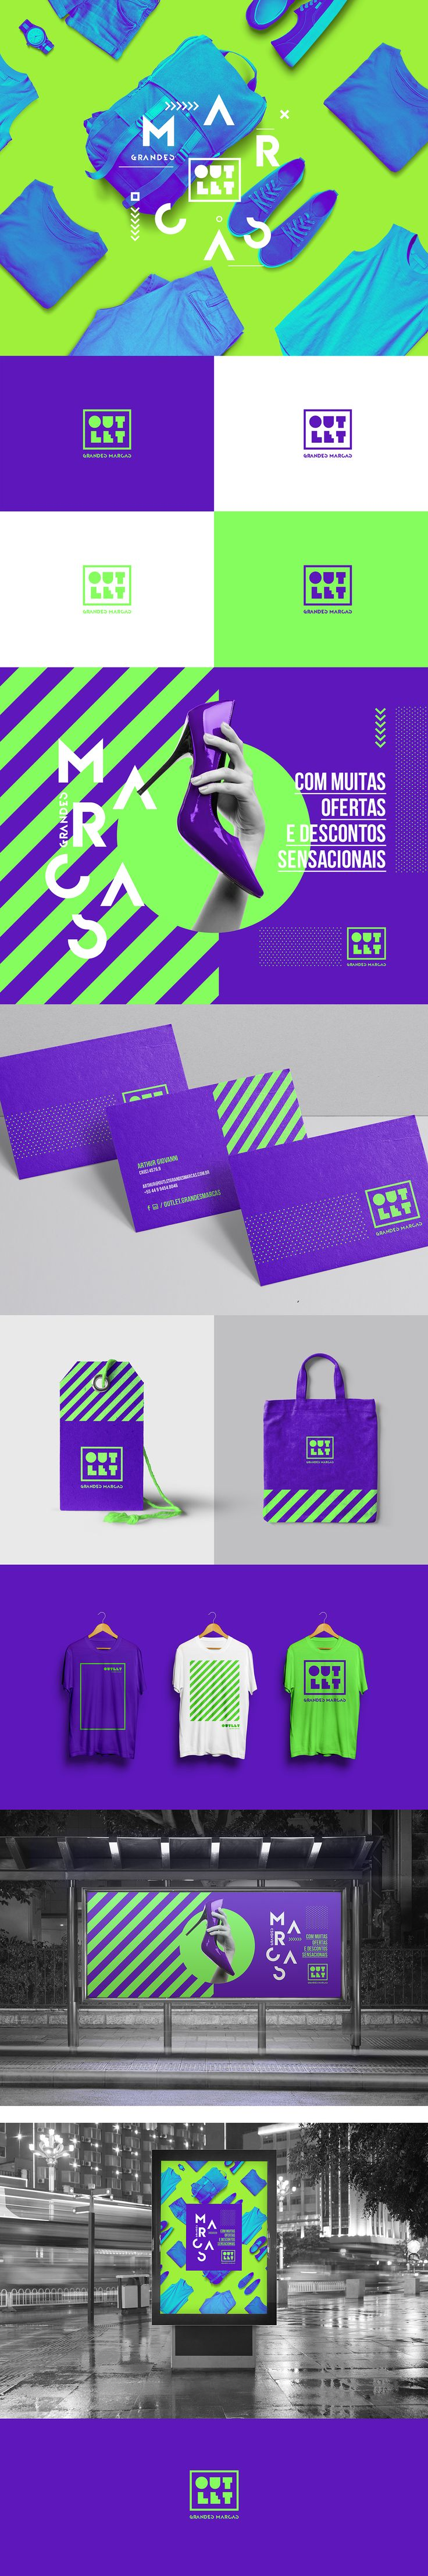 OUTLET GRANDES MARCAS - Nova identidade visual on Behance